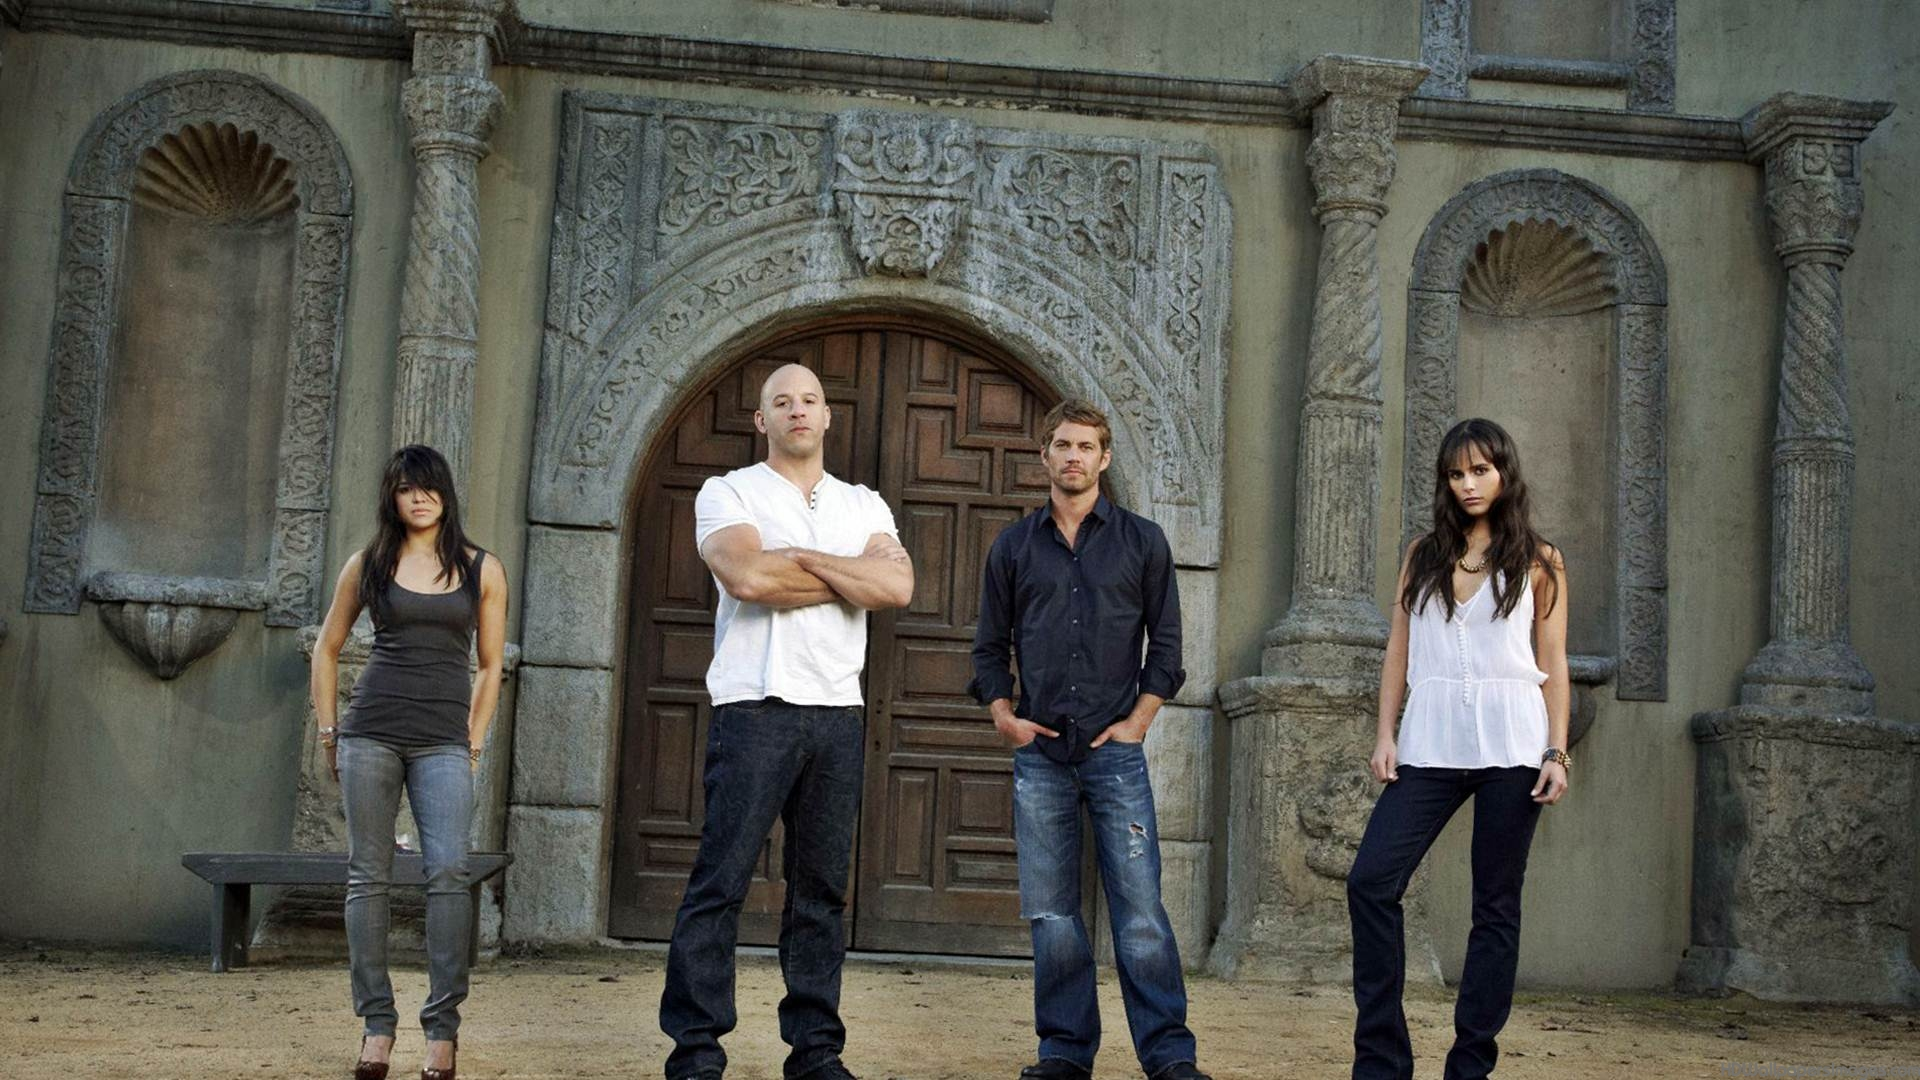 fast and furious 7 hd free download